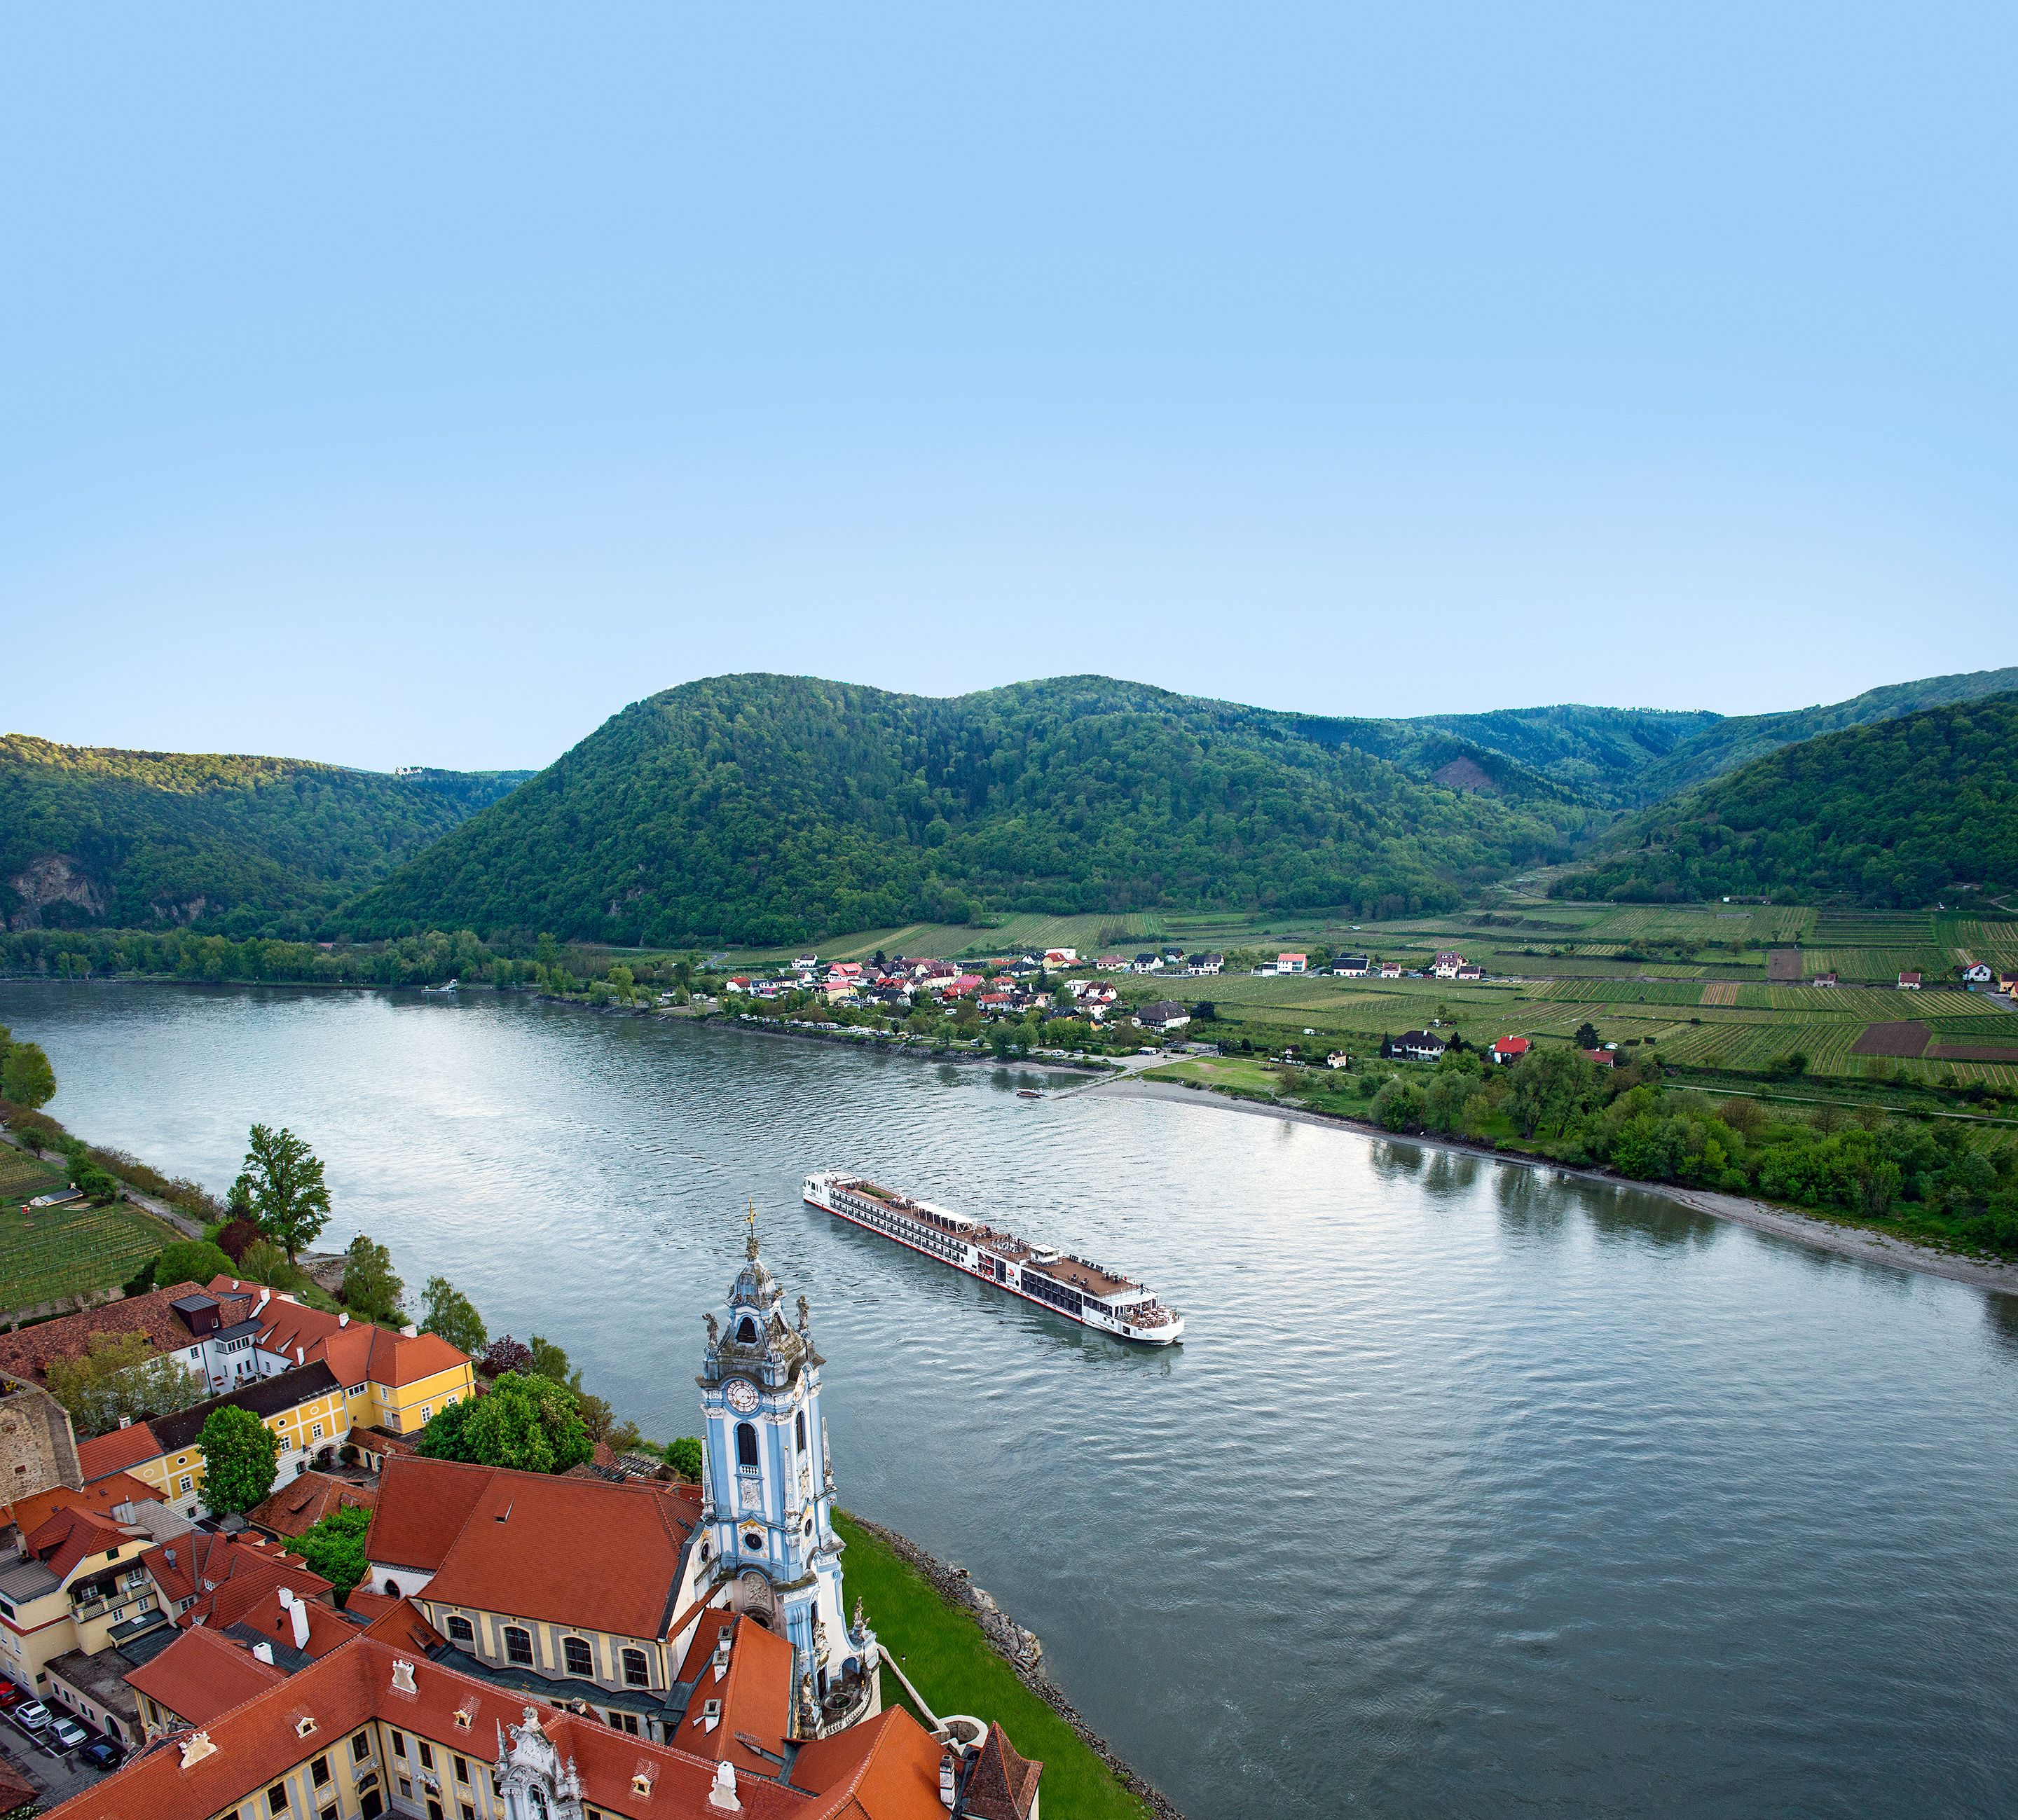 A Viking longship sails through Drnstein Austria